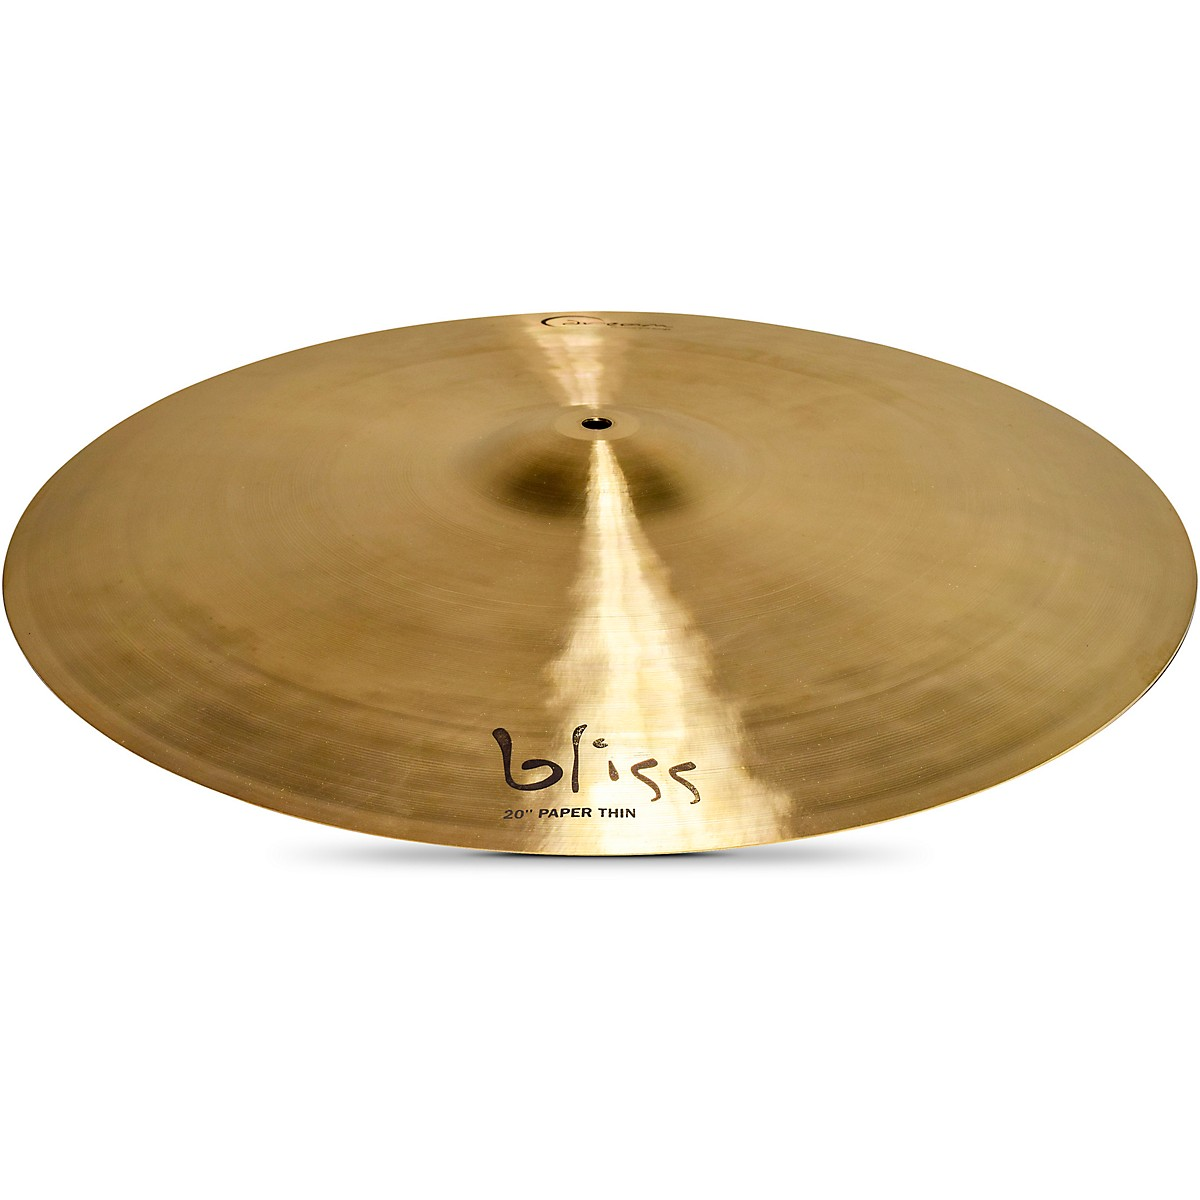 Dream Bliss Series Paper Thin Crash Cymbal